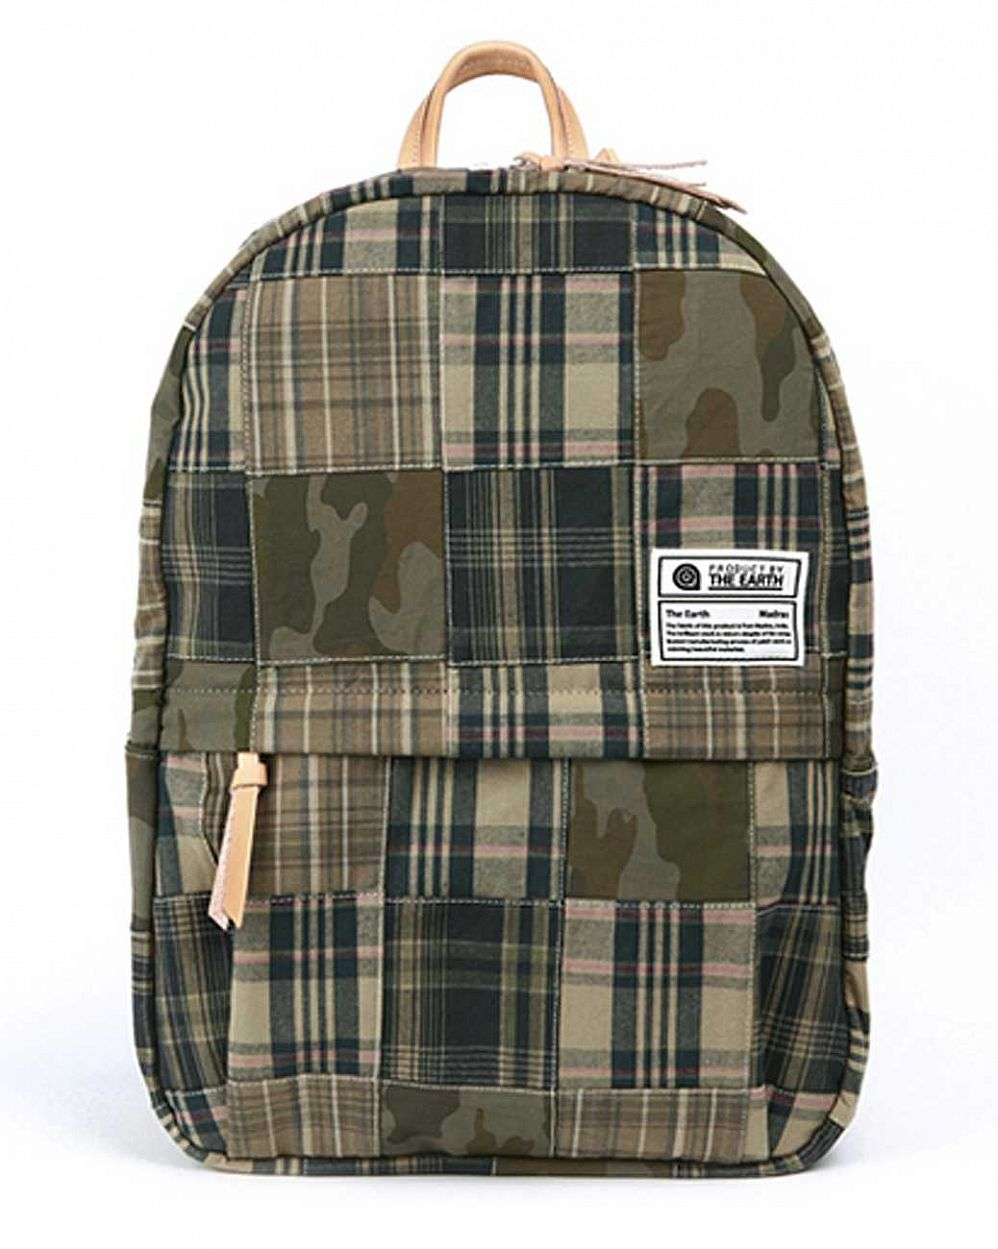 Рюкзак The earth Company Madras Patch Work Daypack camo mix отзывы